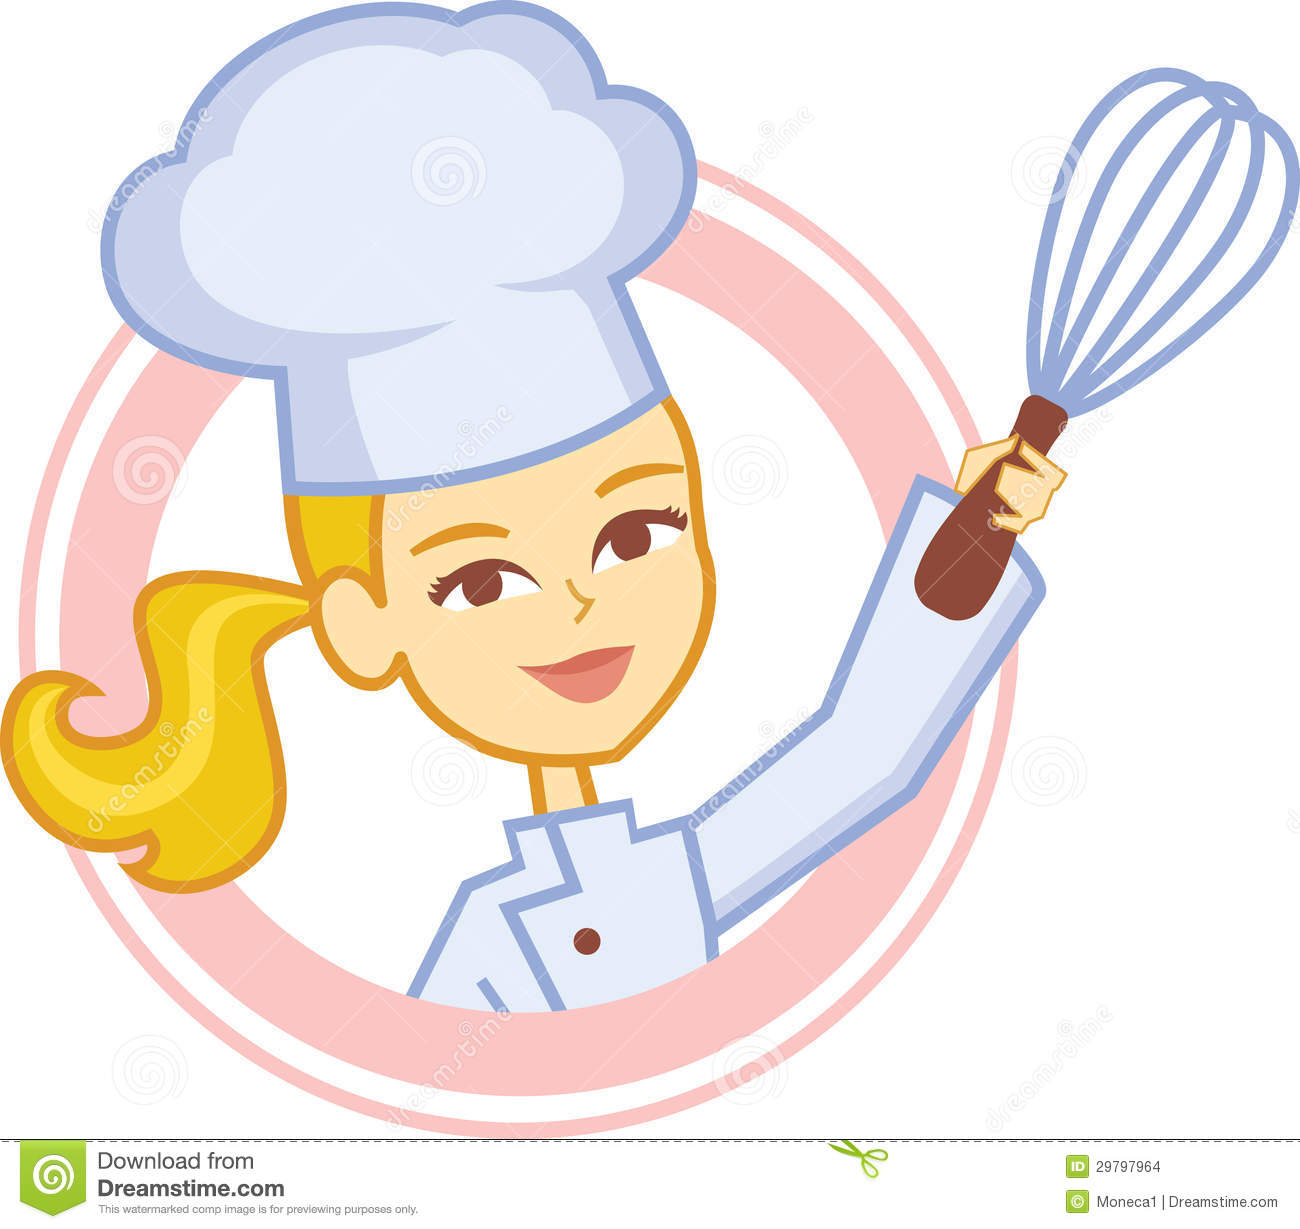 girl chef clipart.